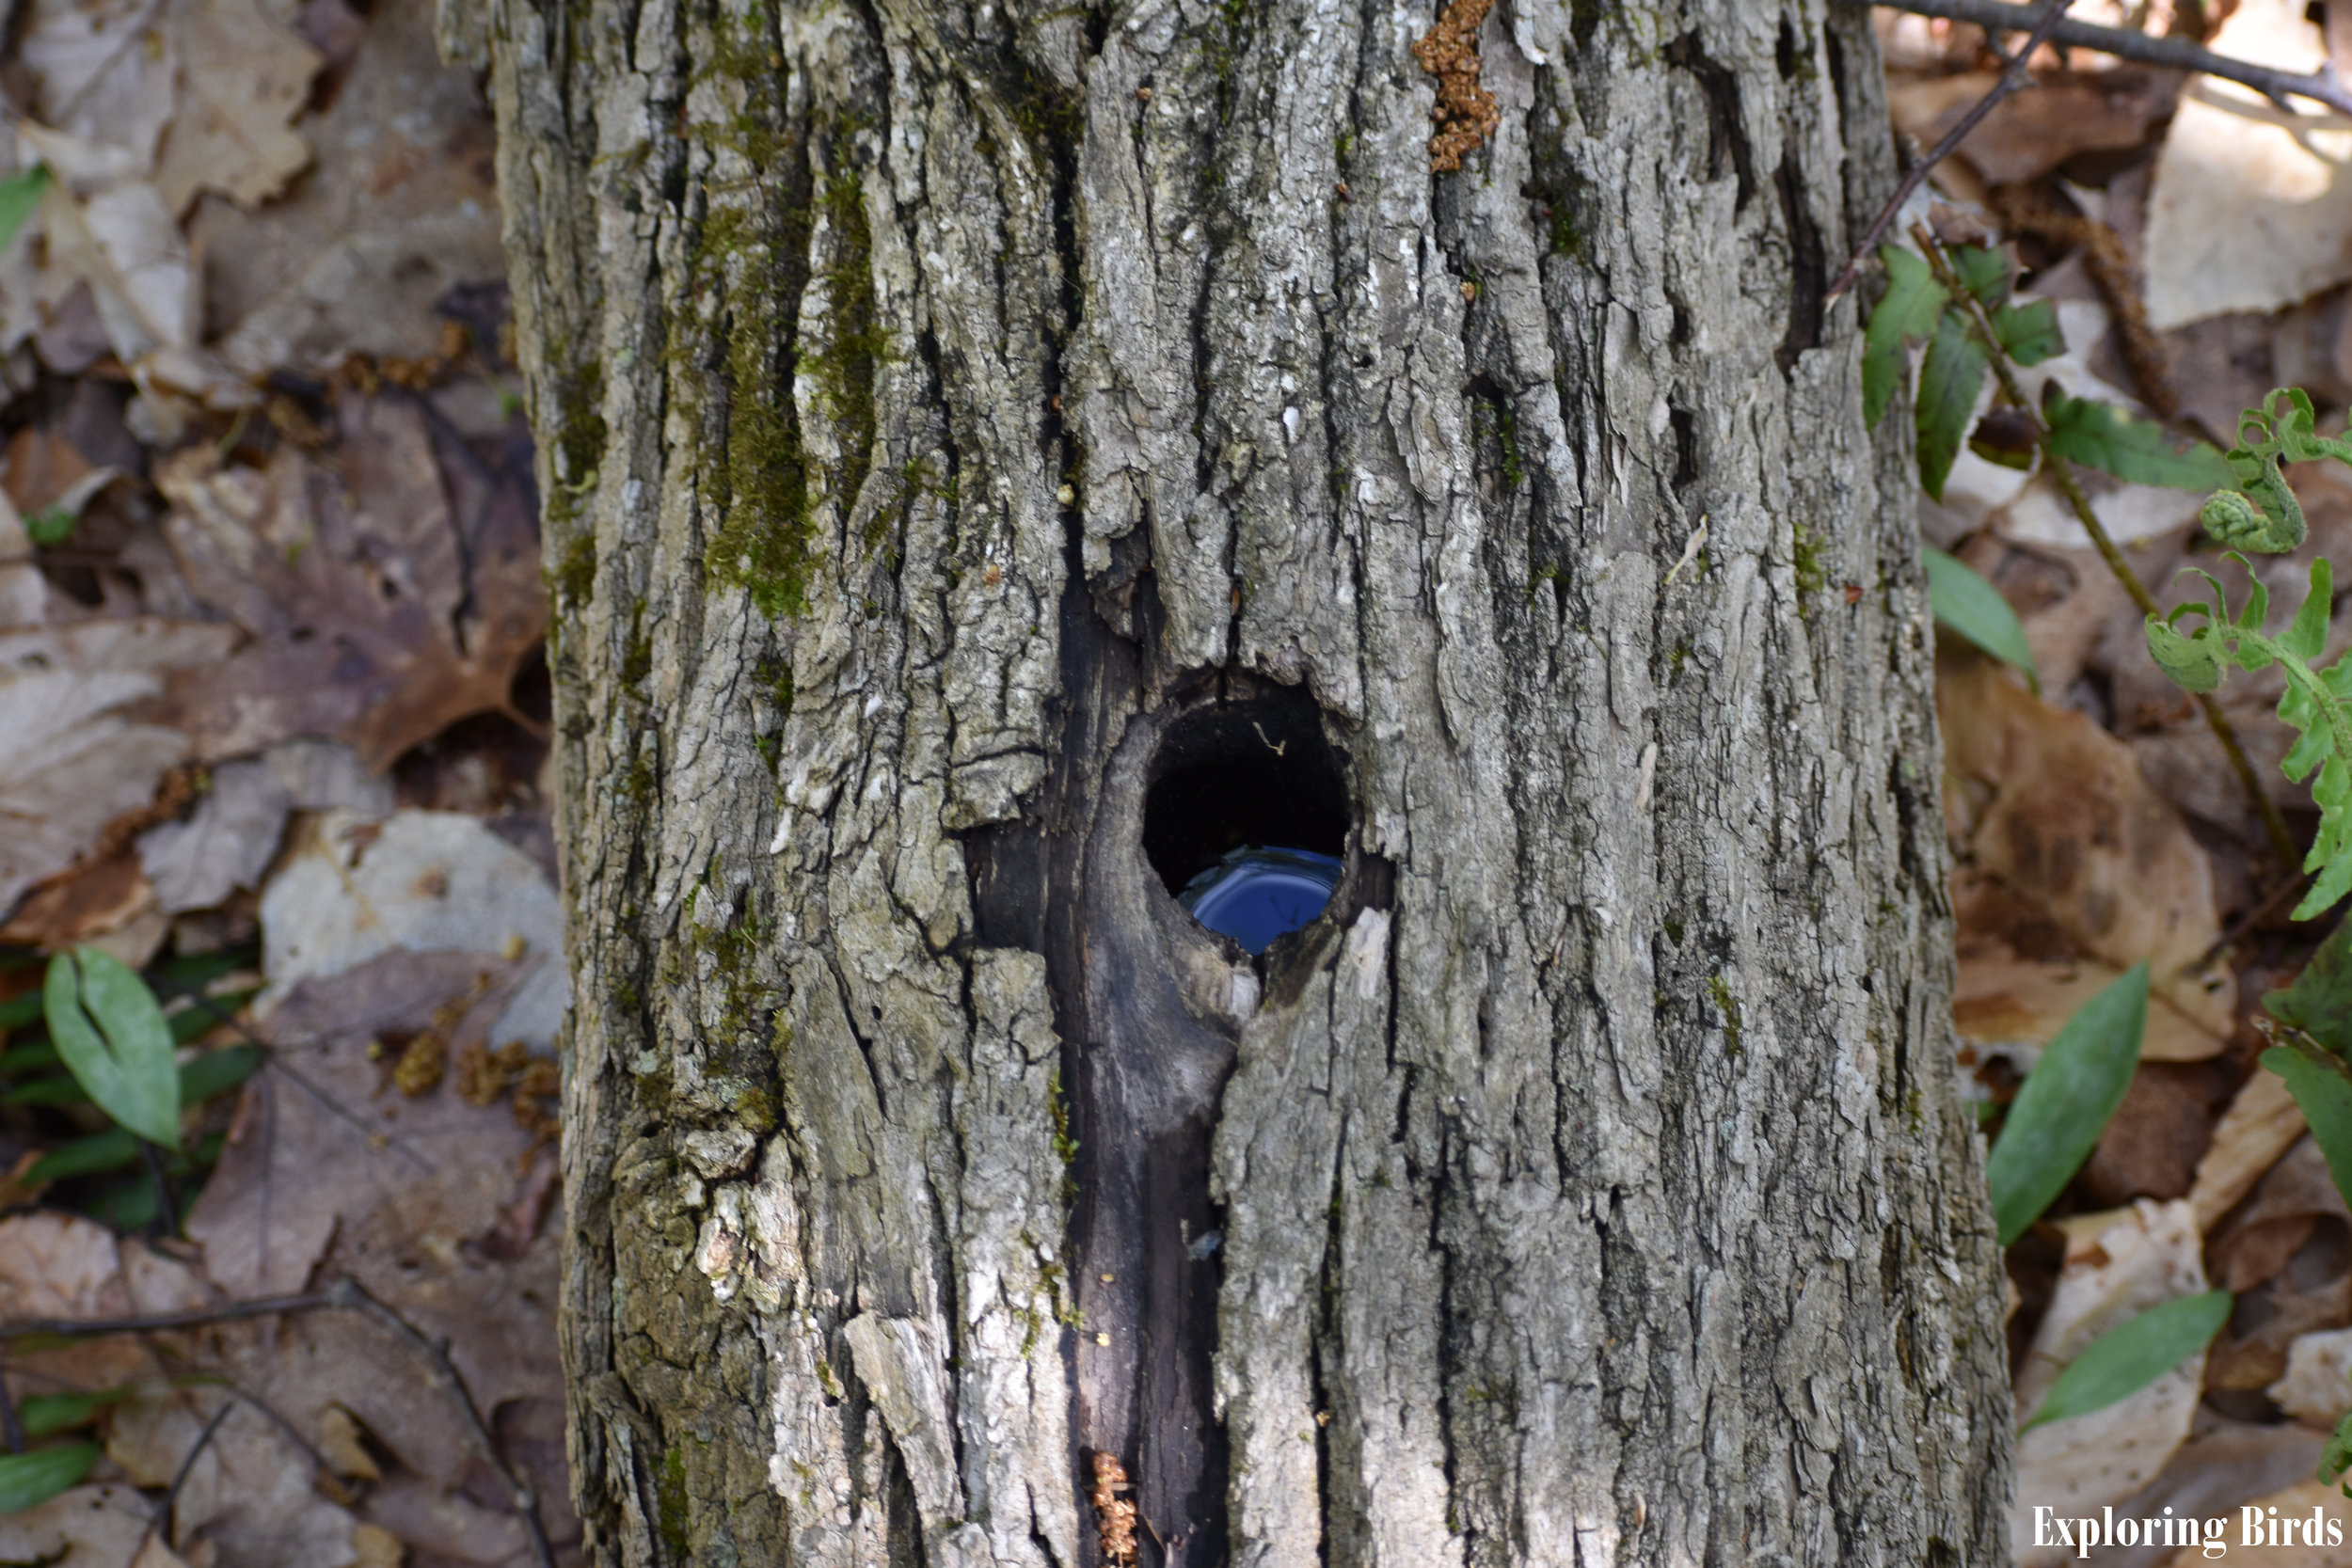 Cavities in dead trees are used by birds for nesting